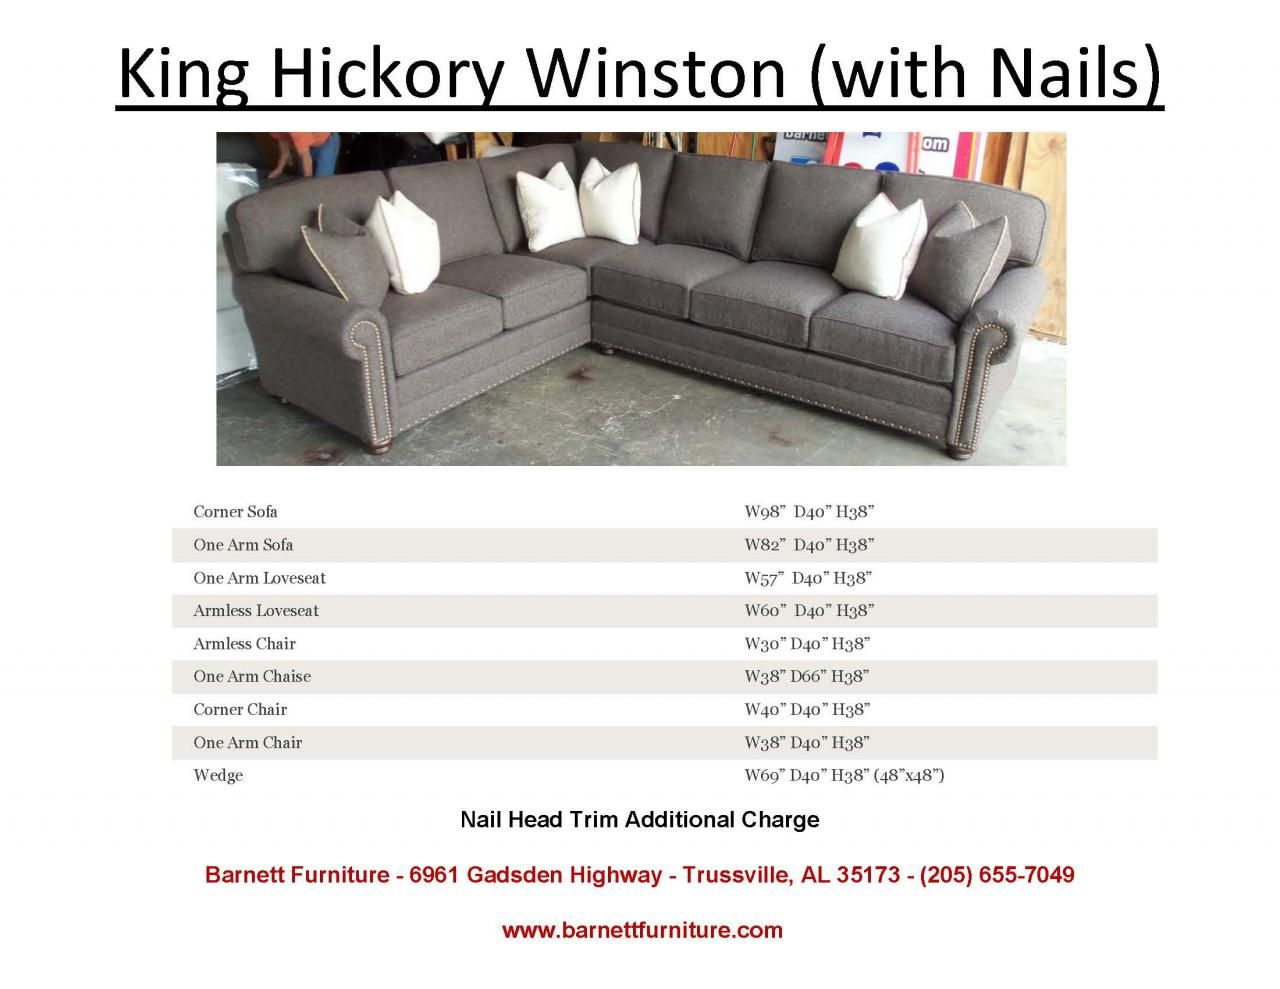 King Hickory Winston Sectional With Nail Head Trim You Choose The Pieces To Fit Your